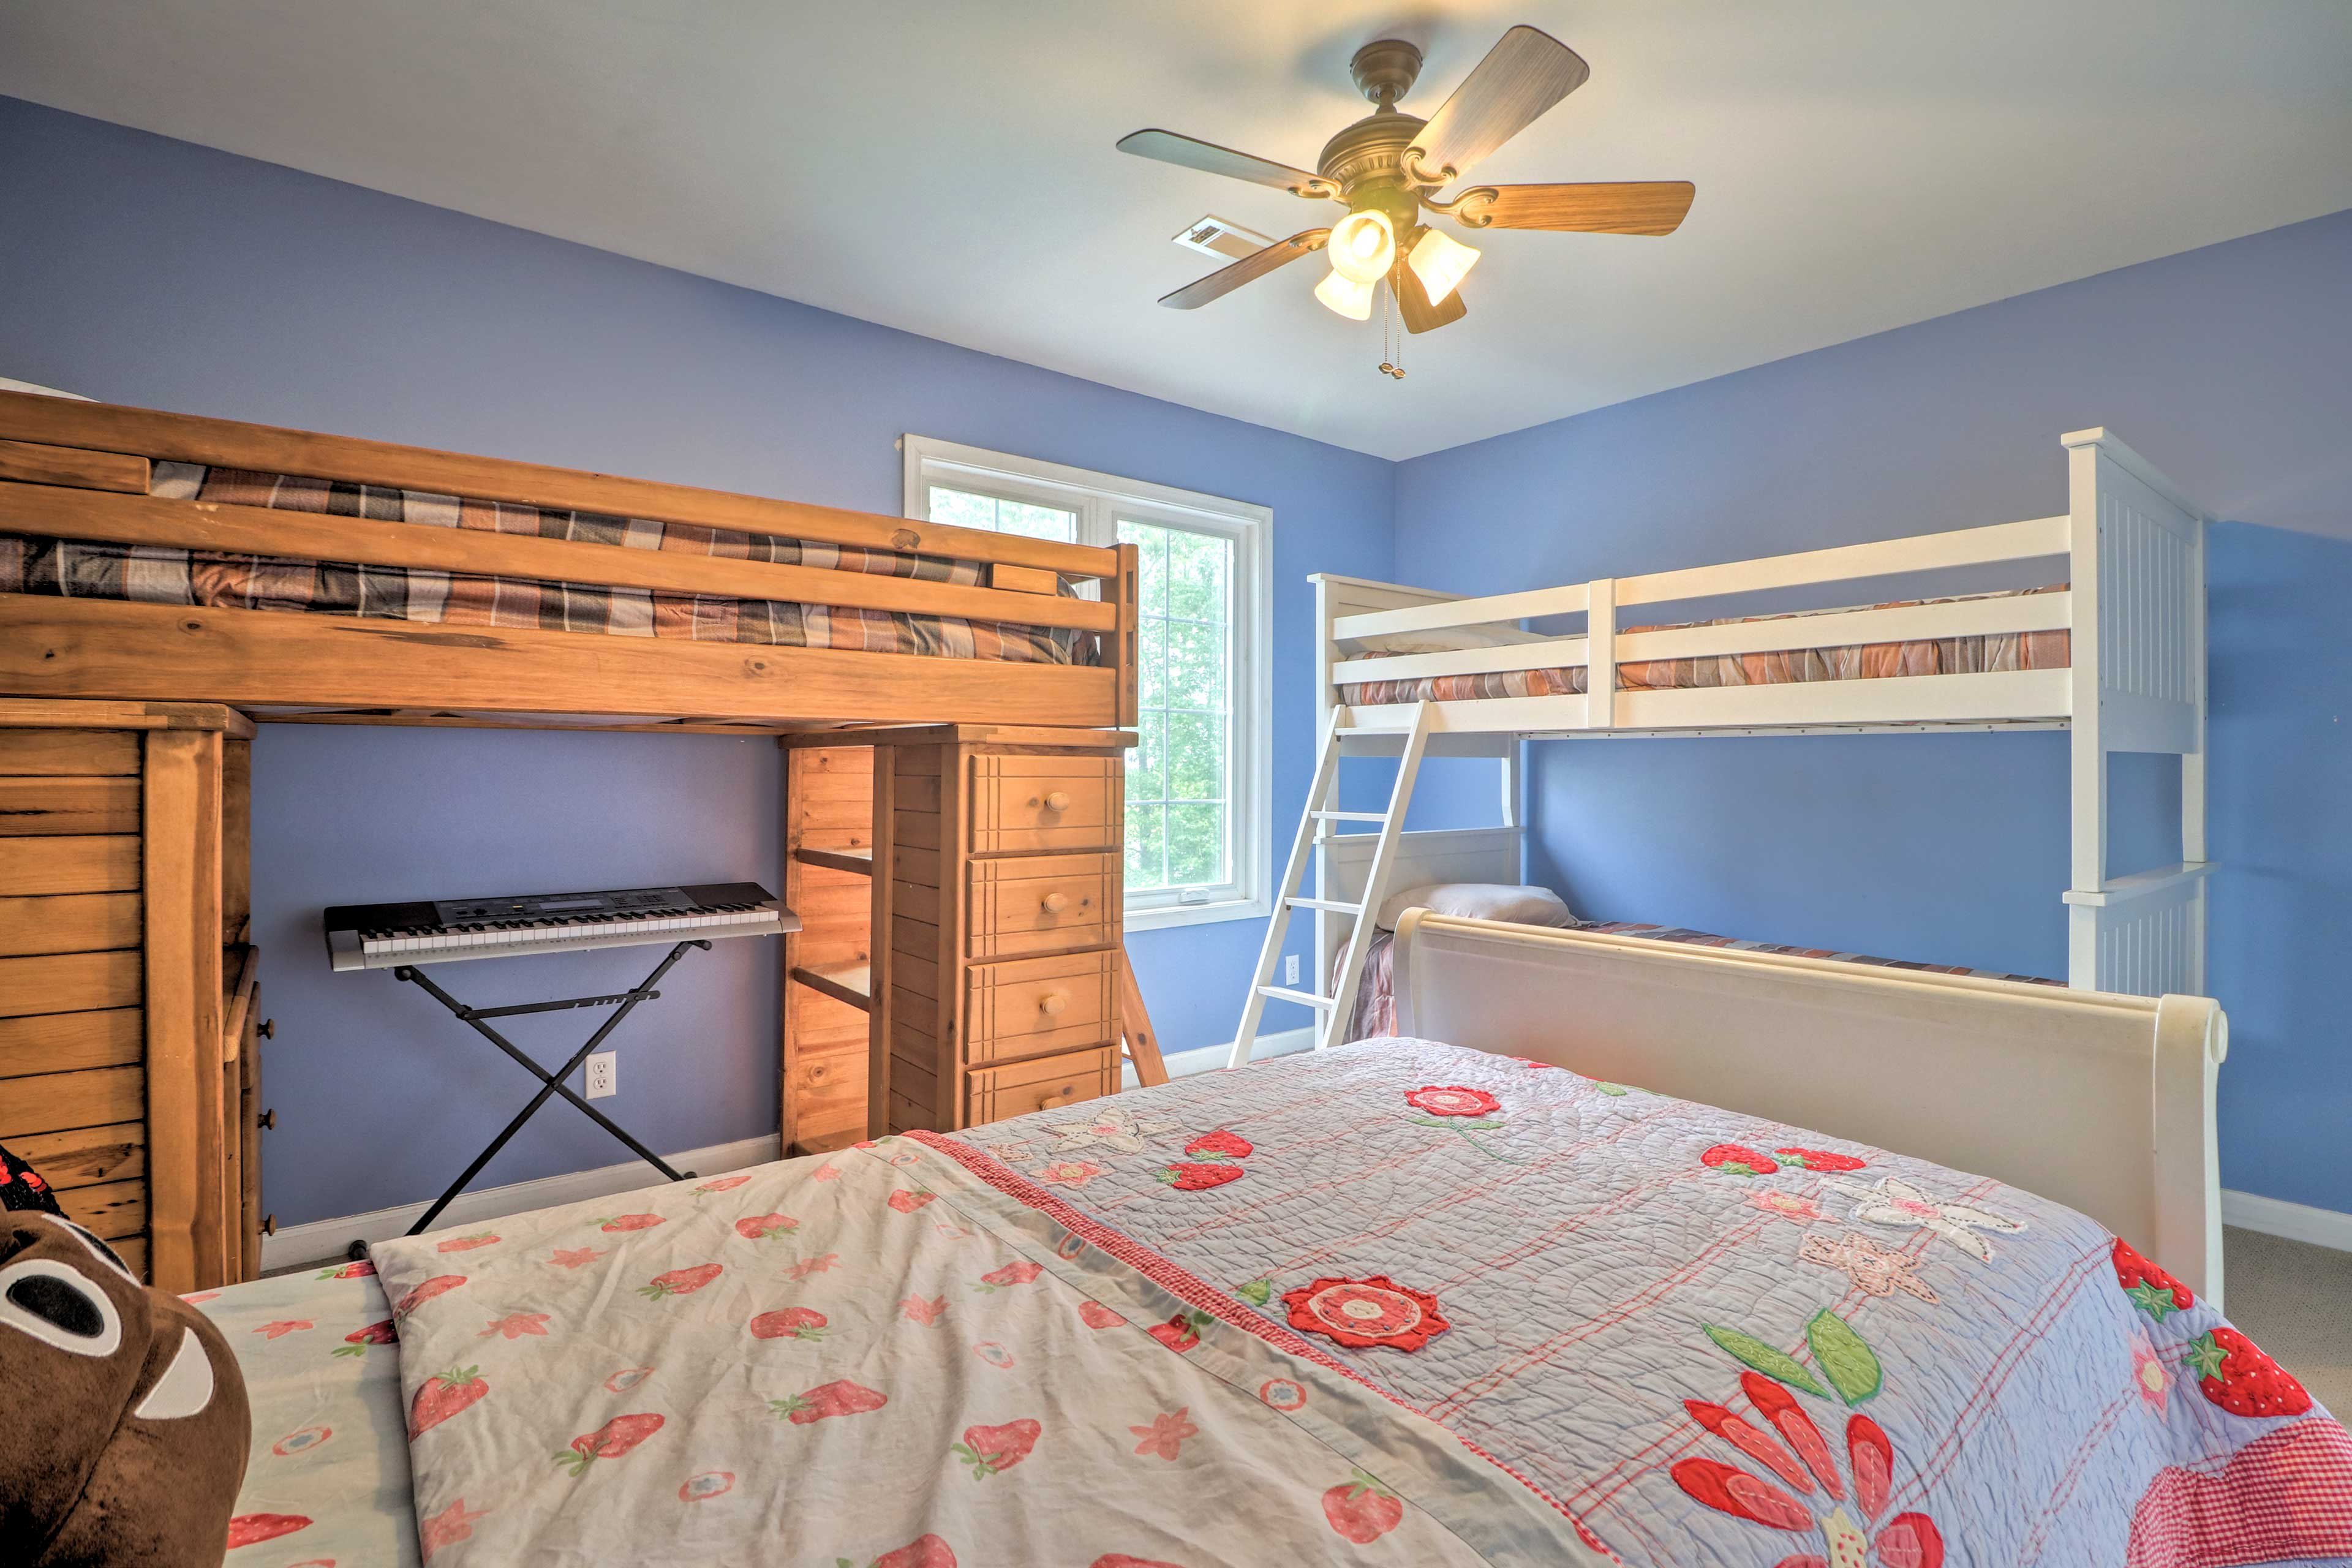 Three guests can sleep in 1 of 3 twin beds, 2 of which are lofted.